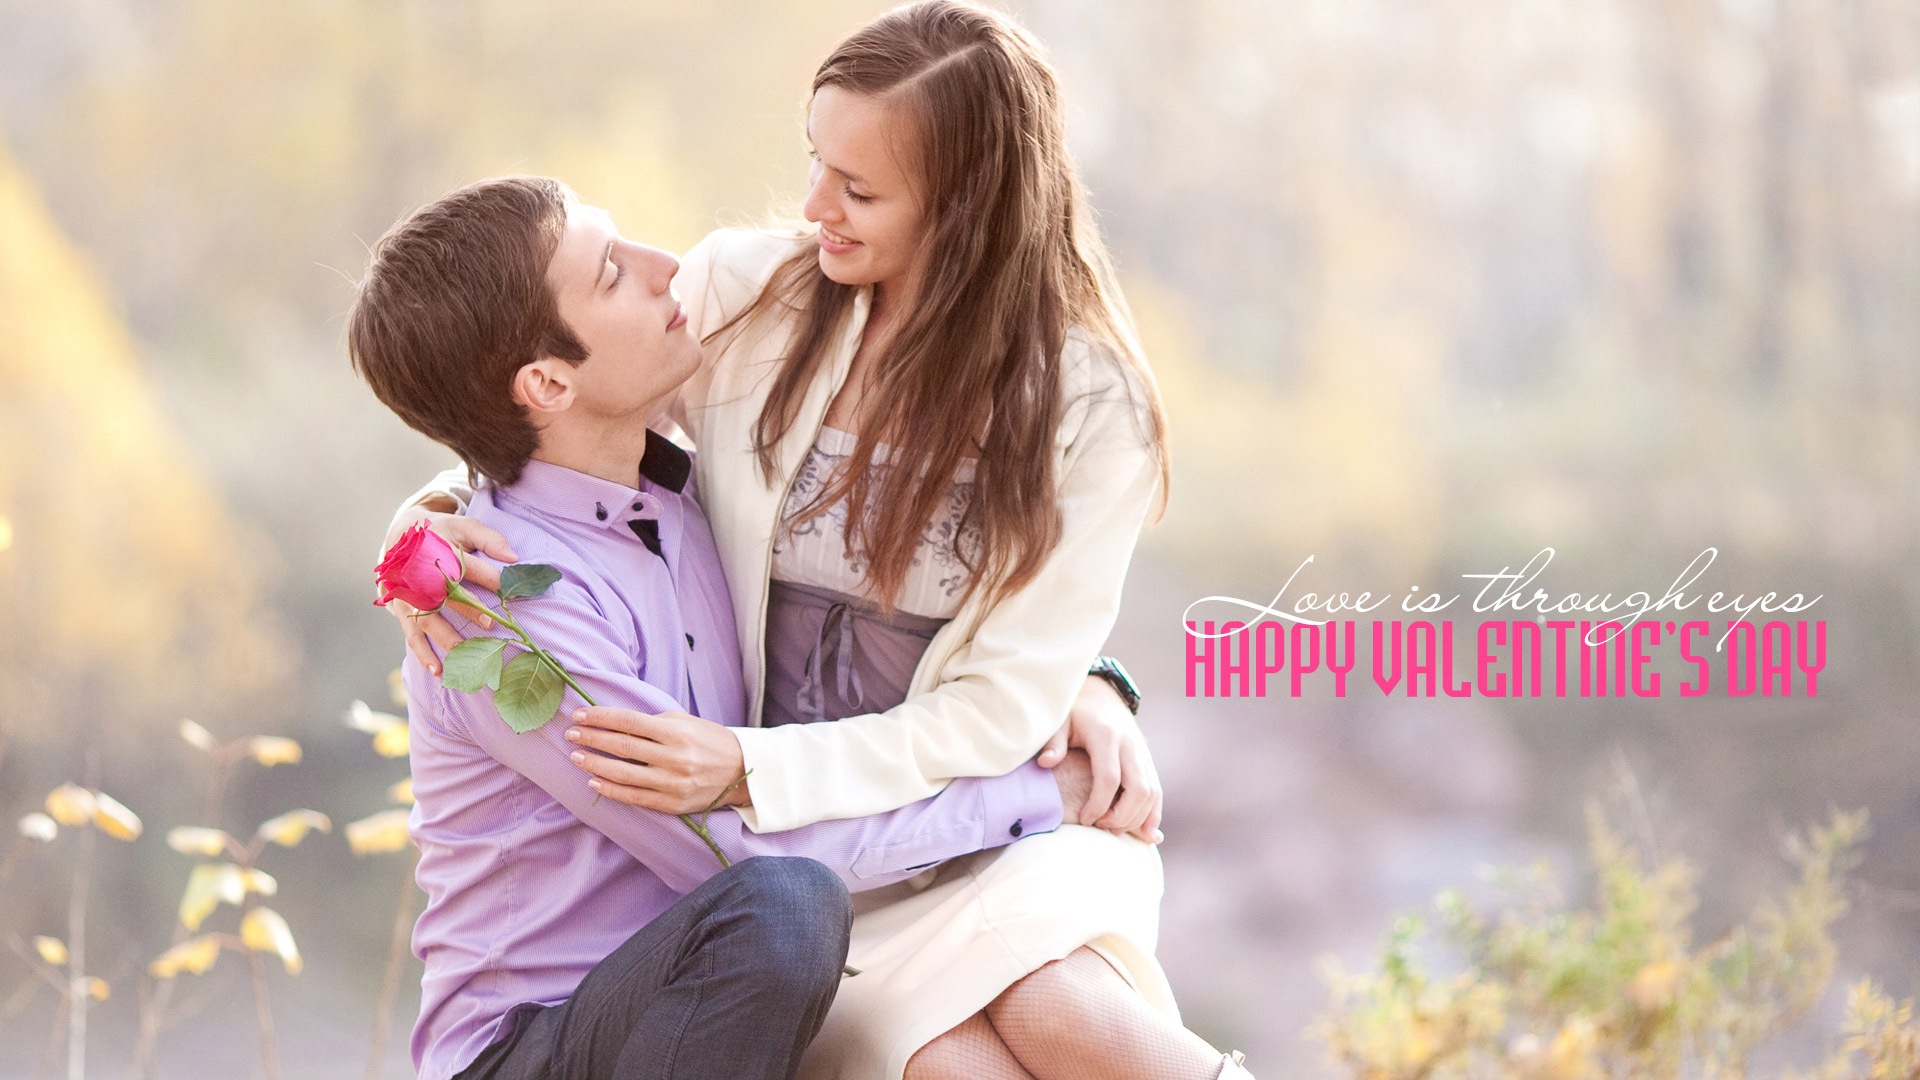 Know How New Couples Are Celebrating Valentines Day